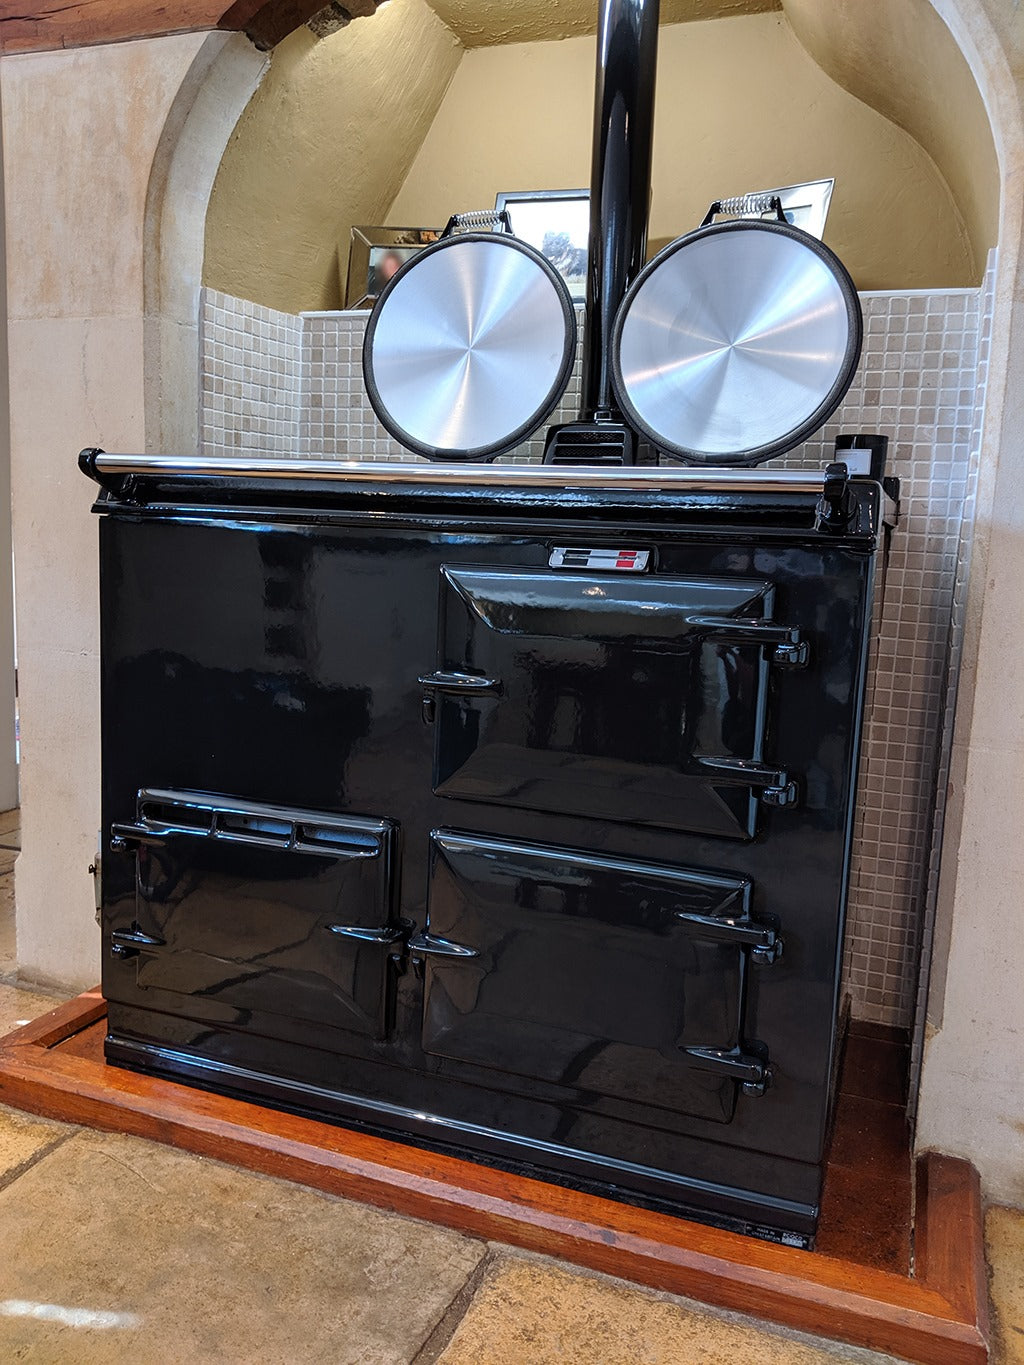 Black re-enamelled Aga range cooker with lids up